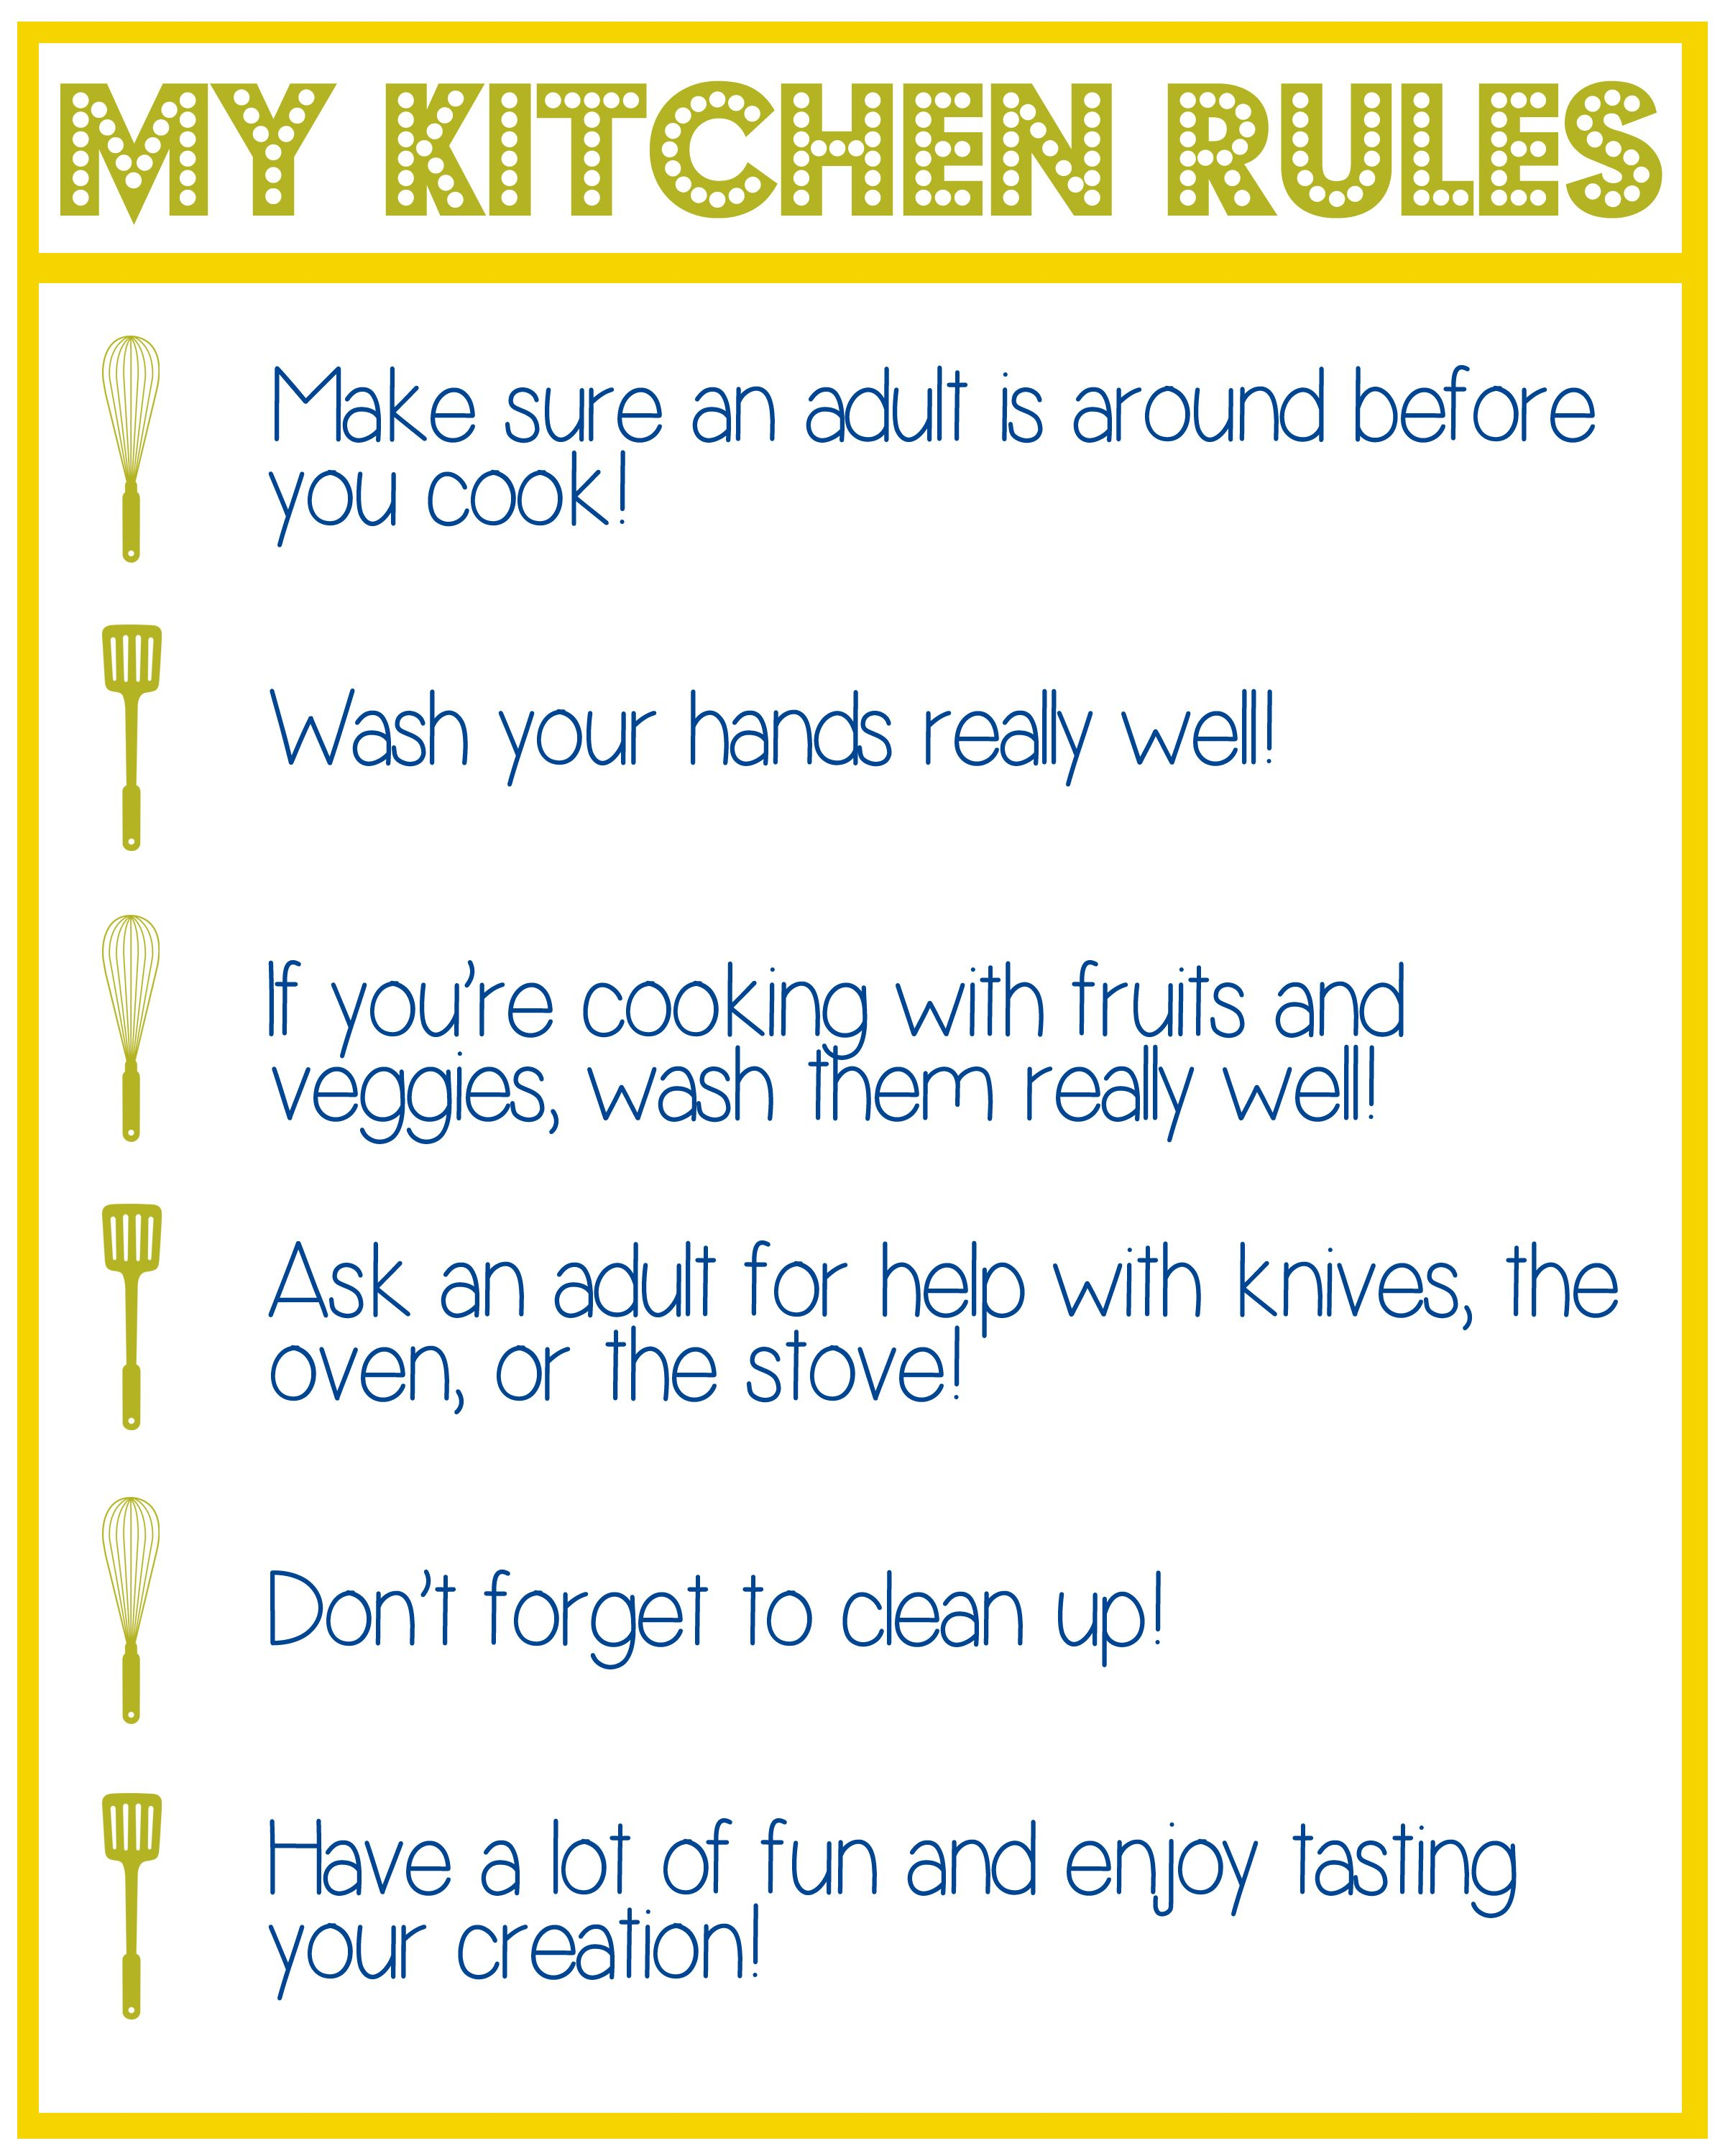 Kids in the Kitchen Cooking Delicious, Healthy Recipes